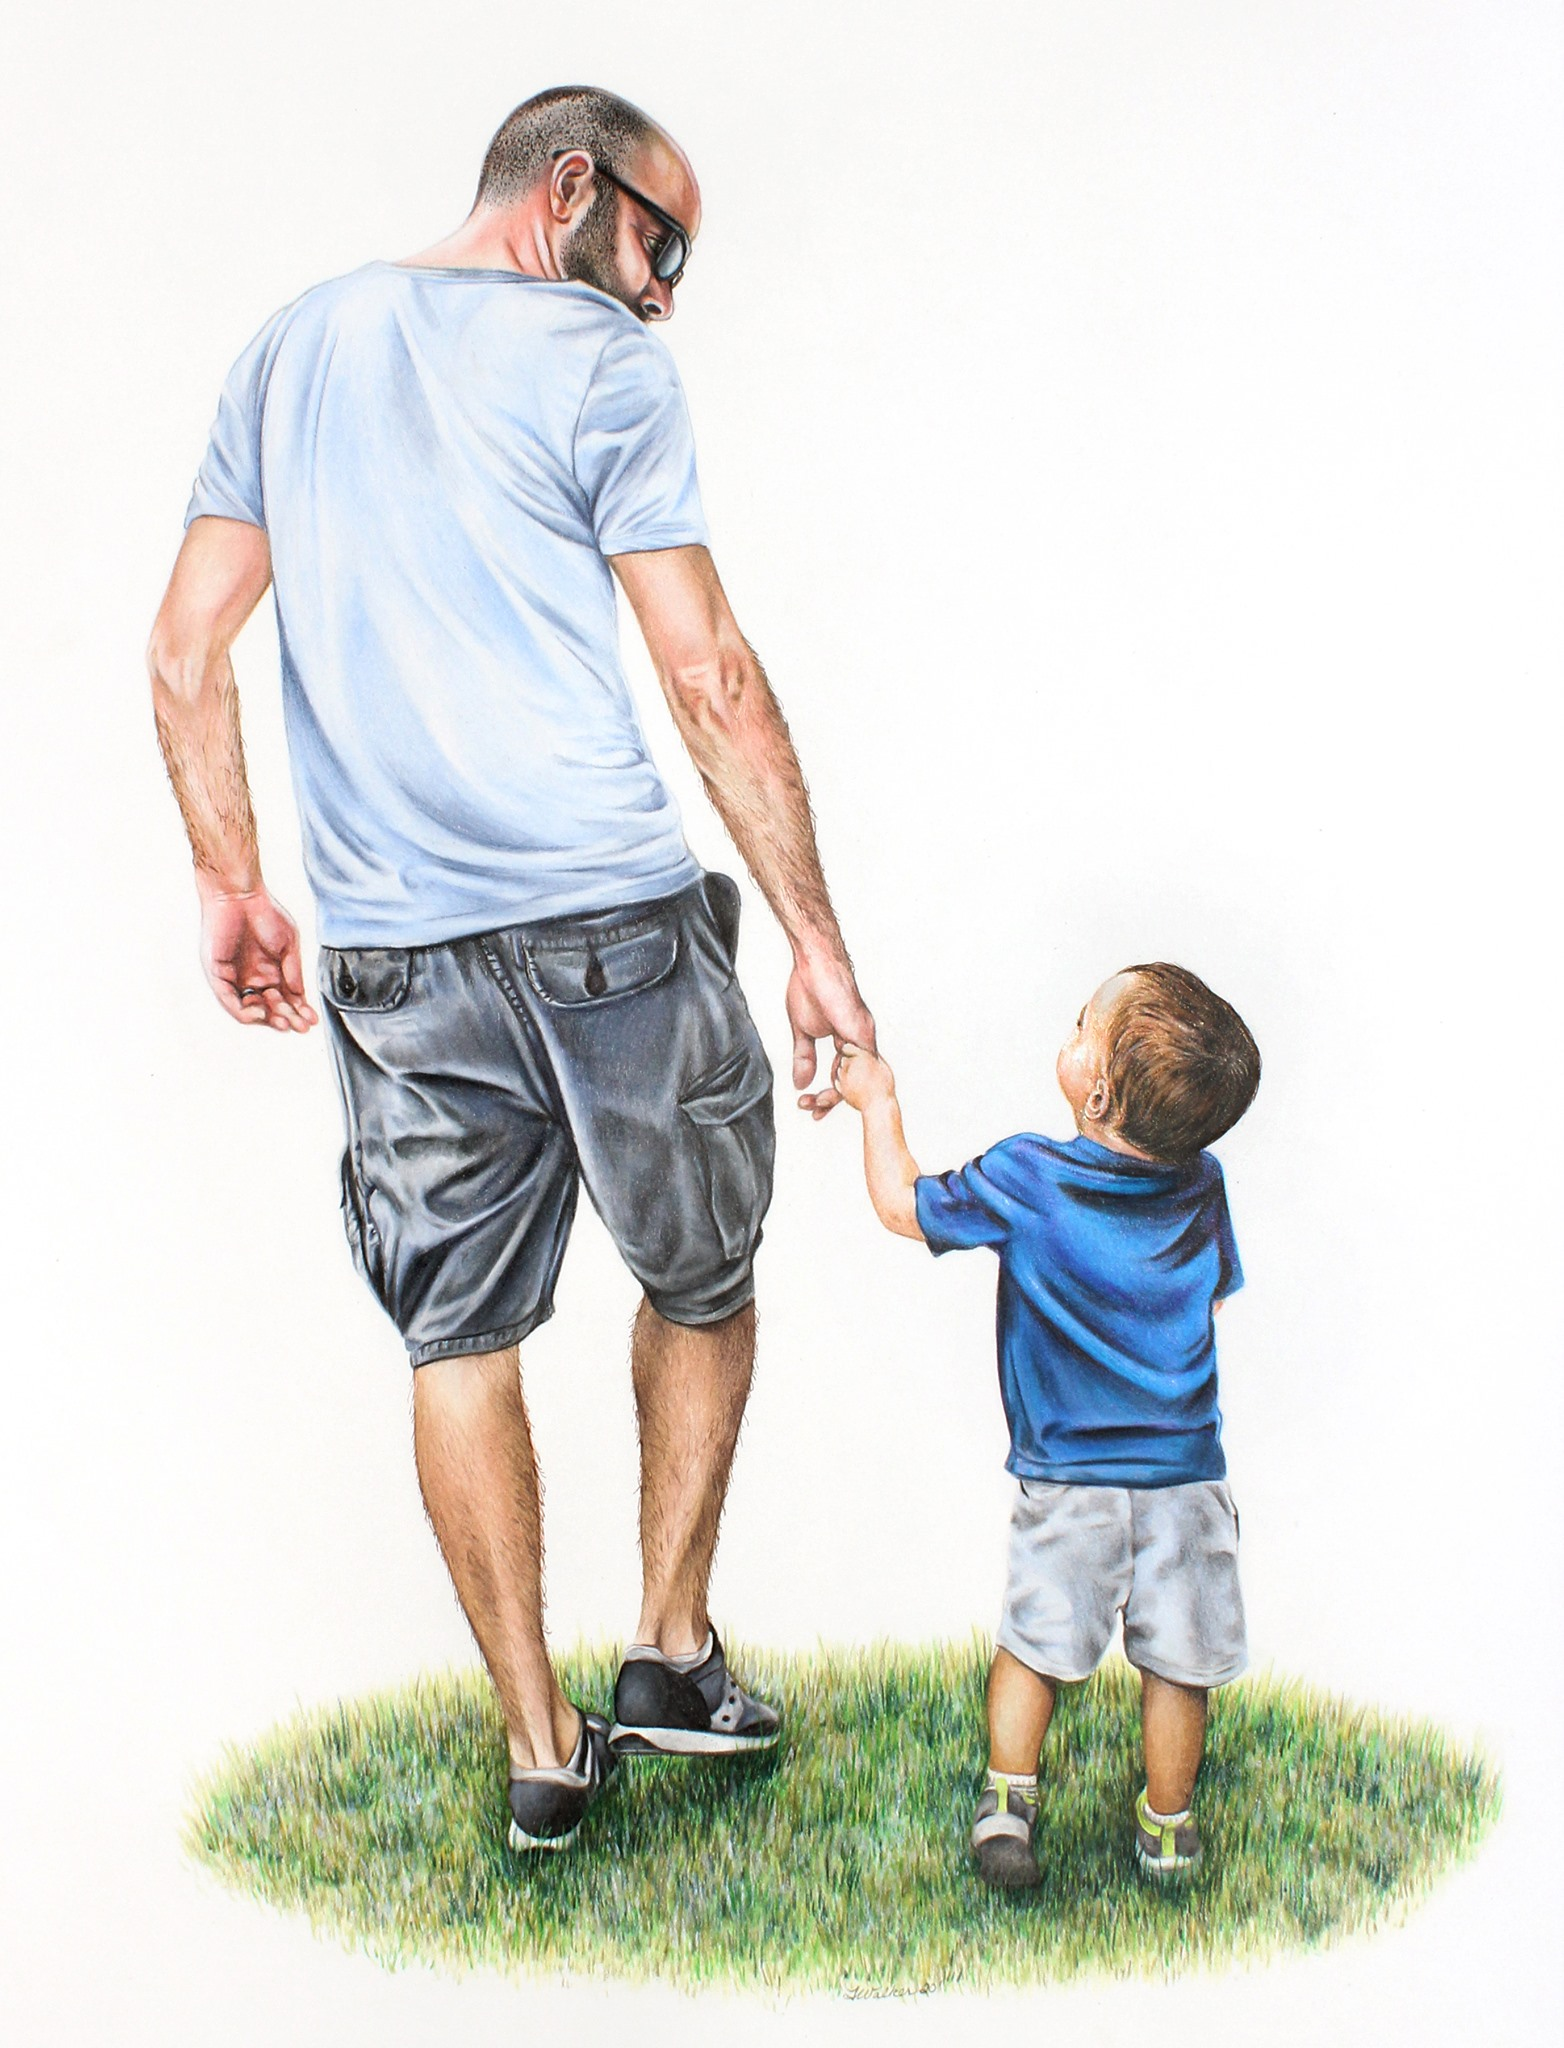 Unique gifts for Father's Day, Personalized gift for dad, hand drawn colored pencil portrait of fath